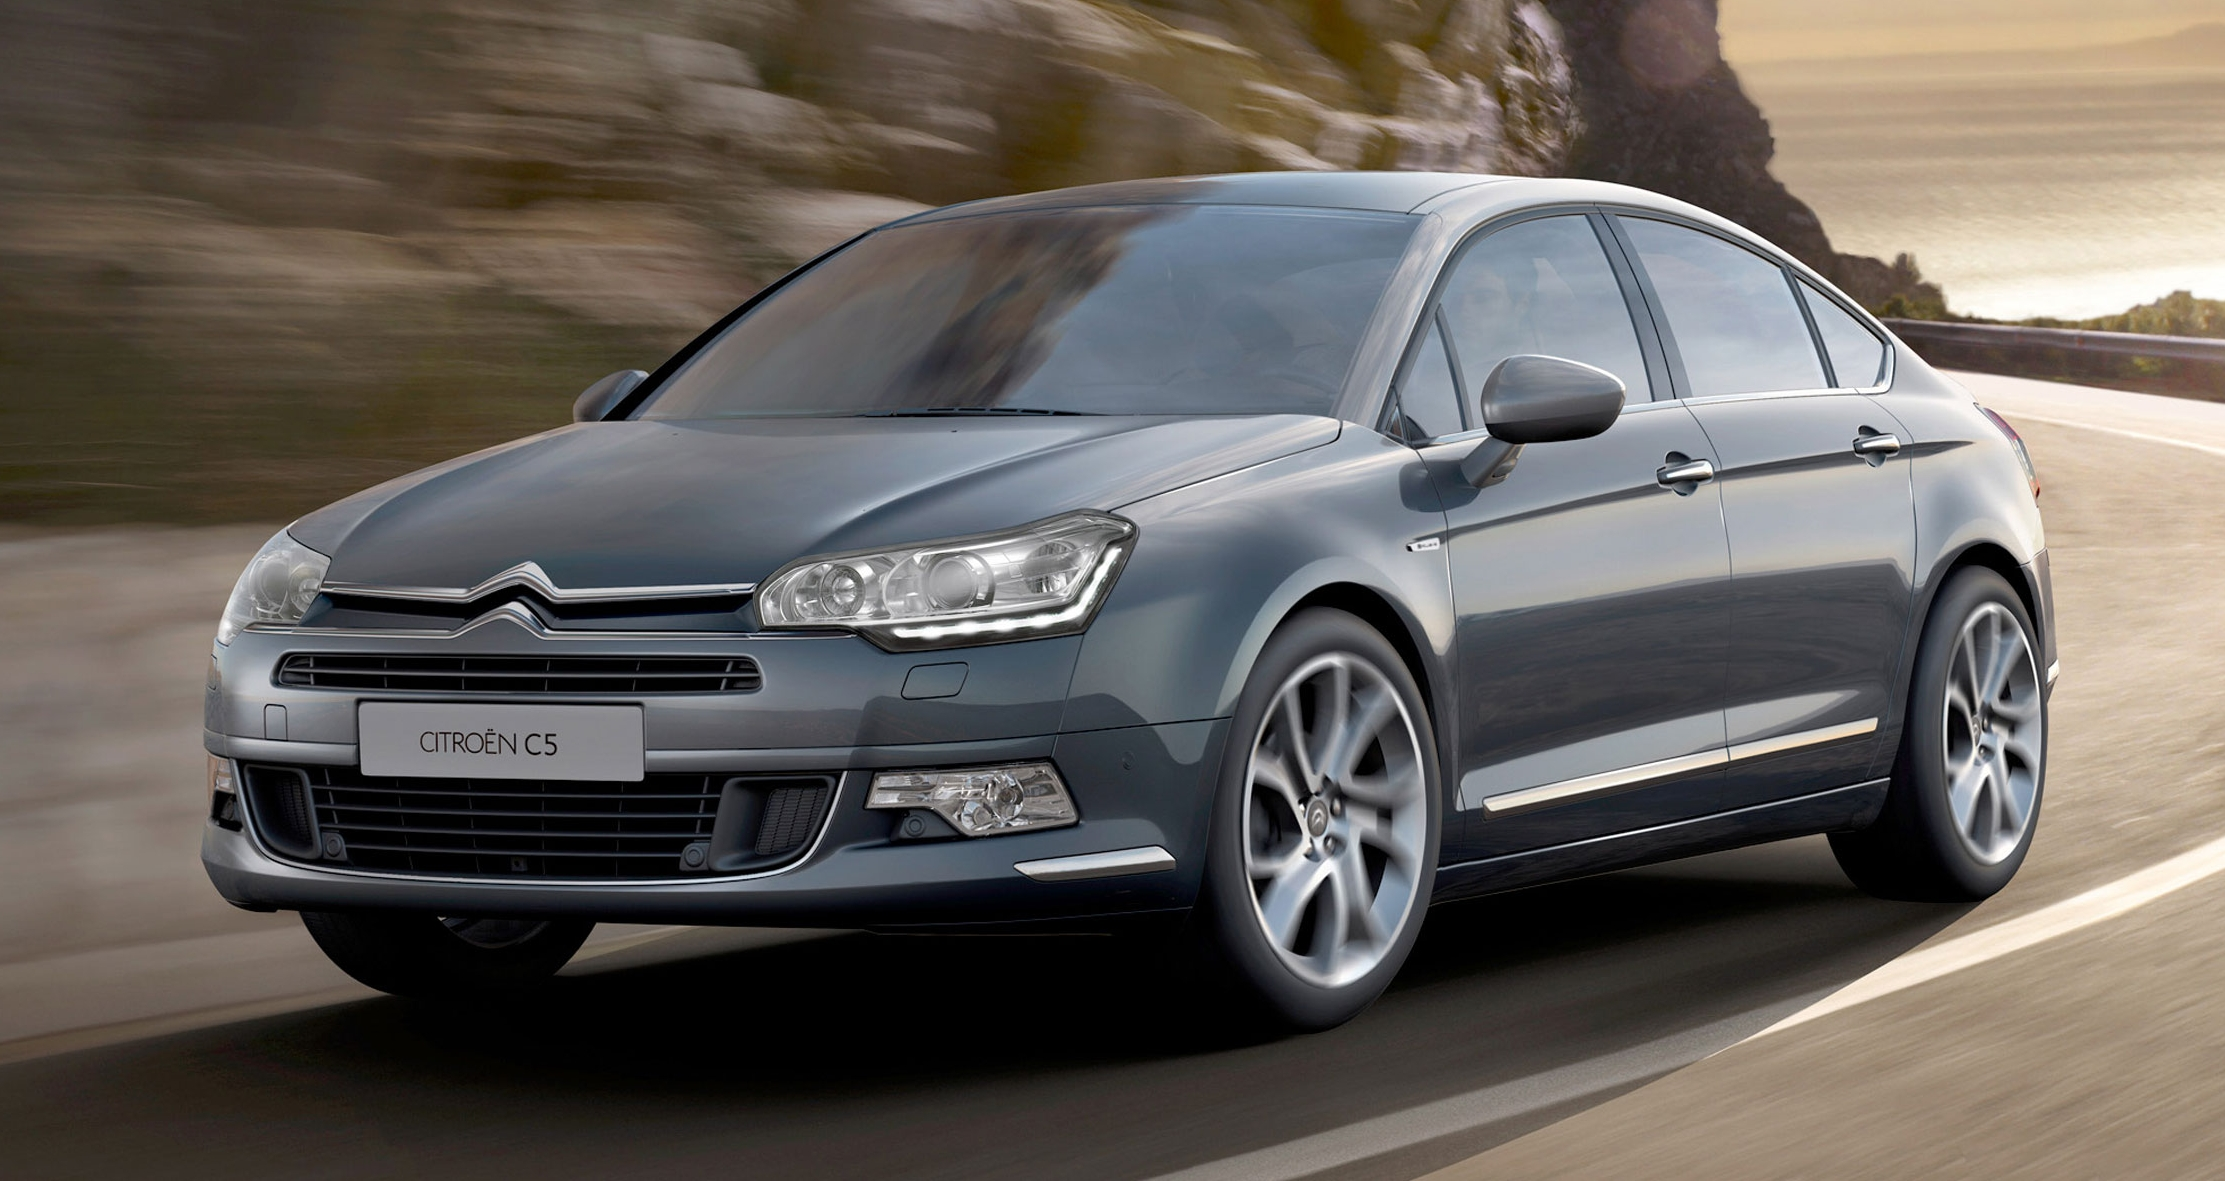 Avant Loan Reviews >> Citroen C5 - adieu to the hydropneumatic suspension